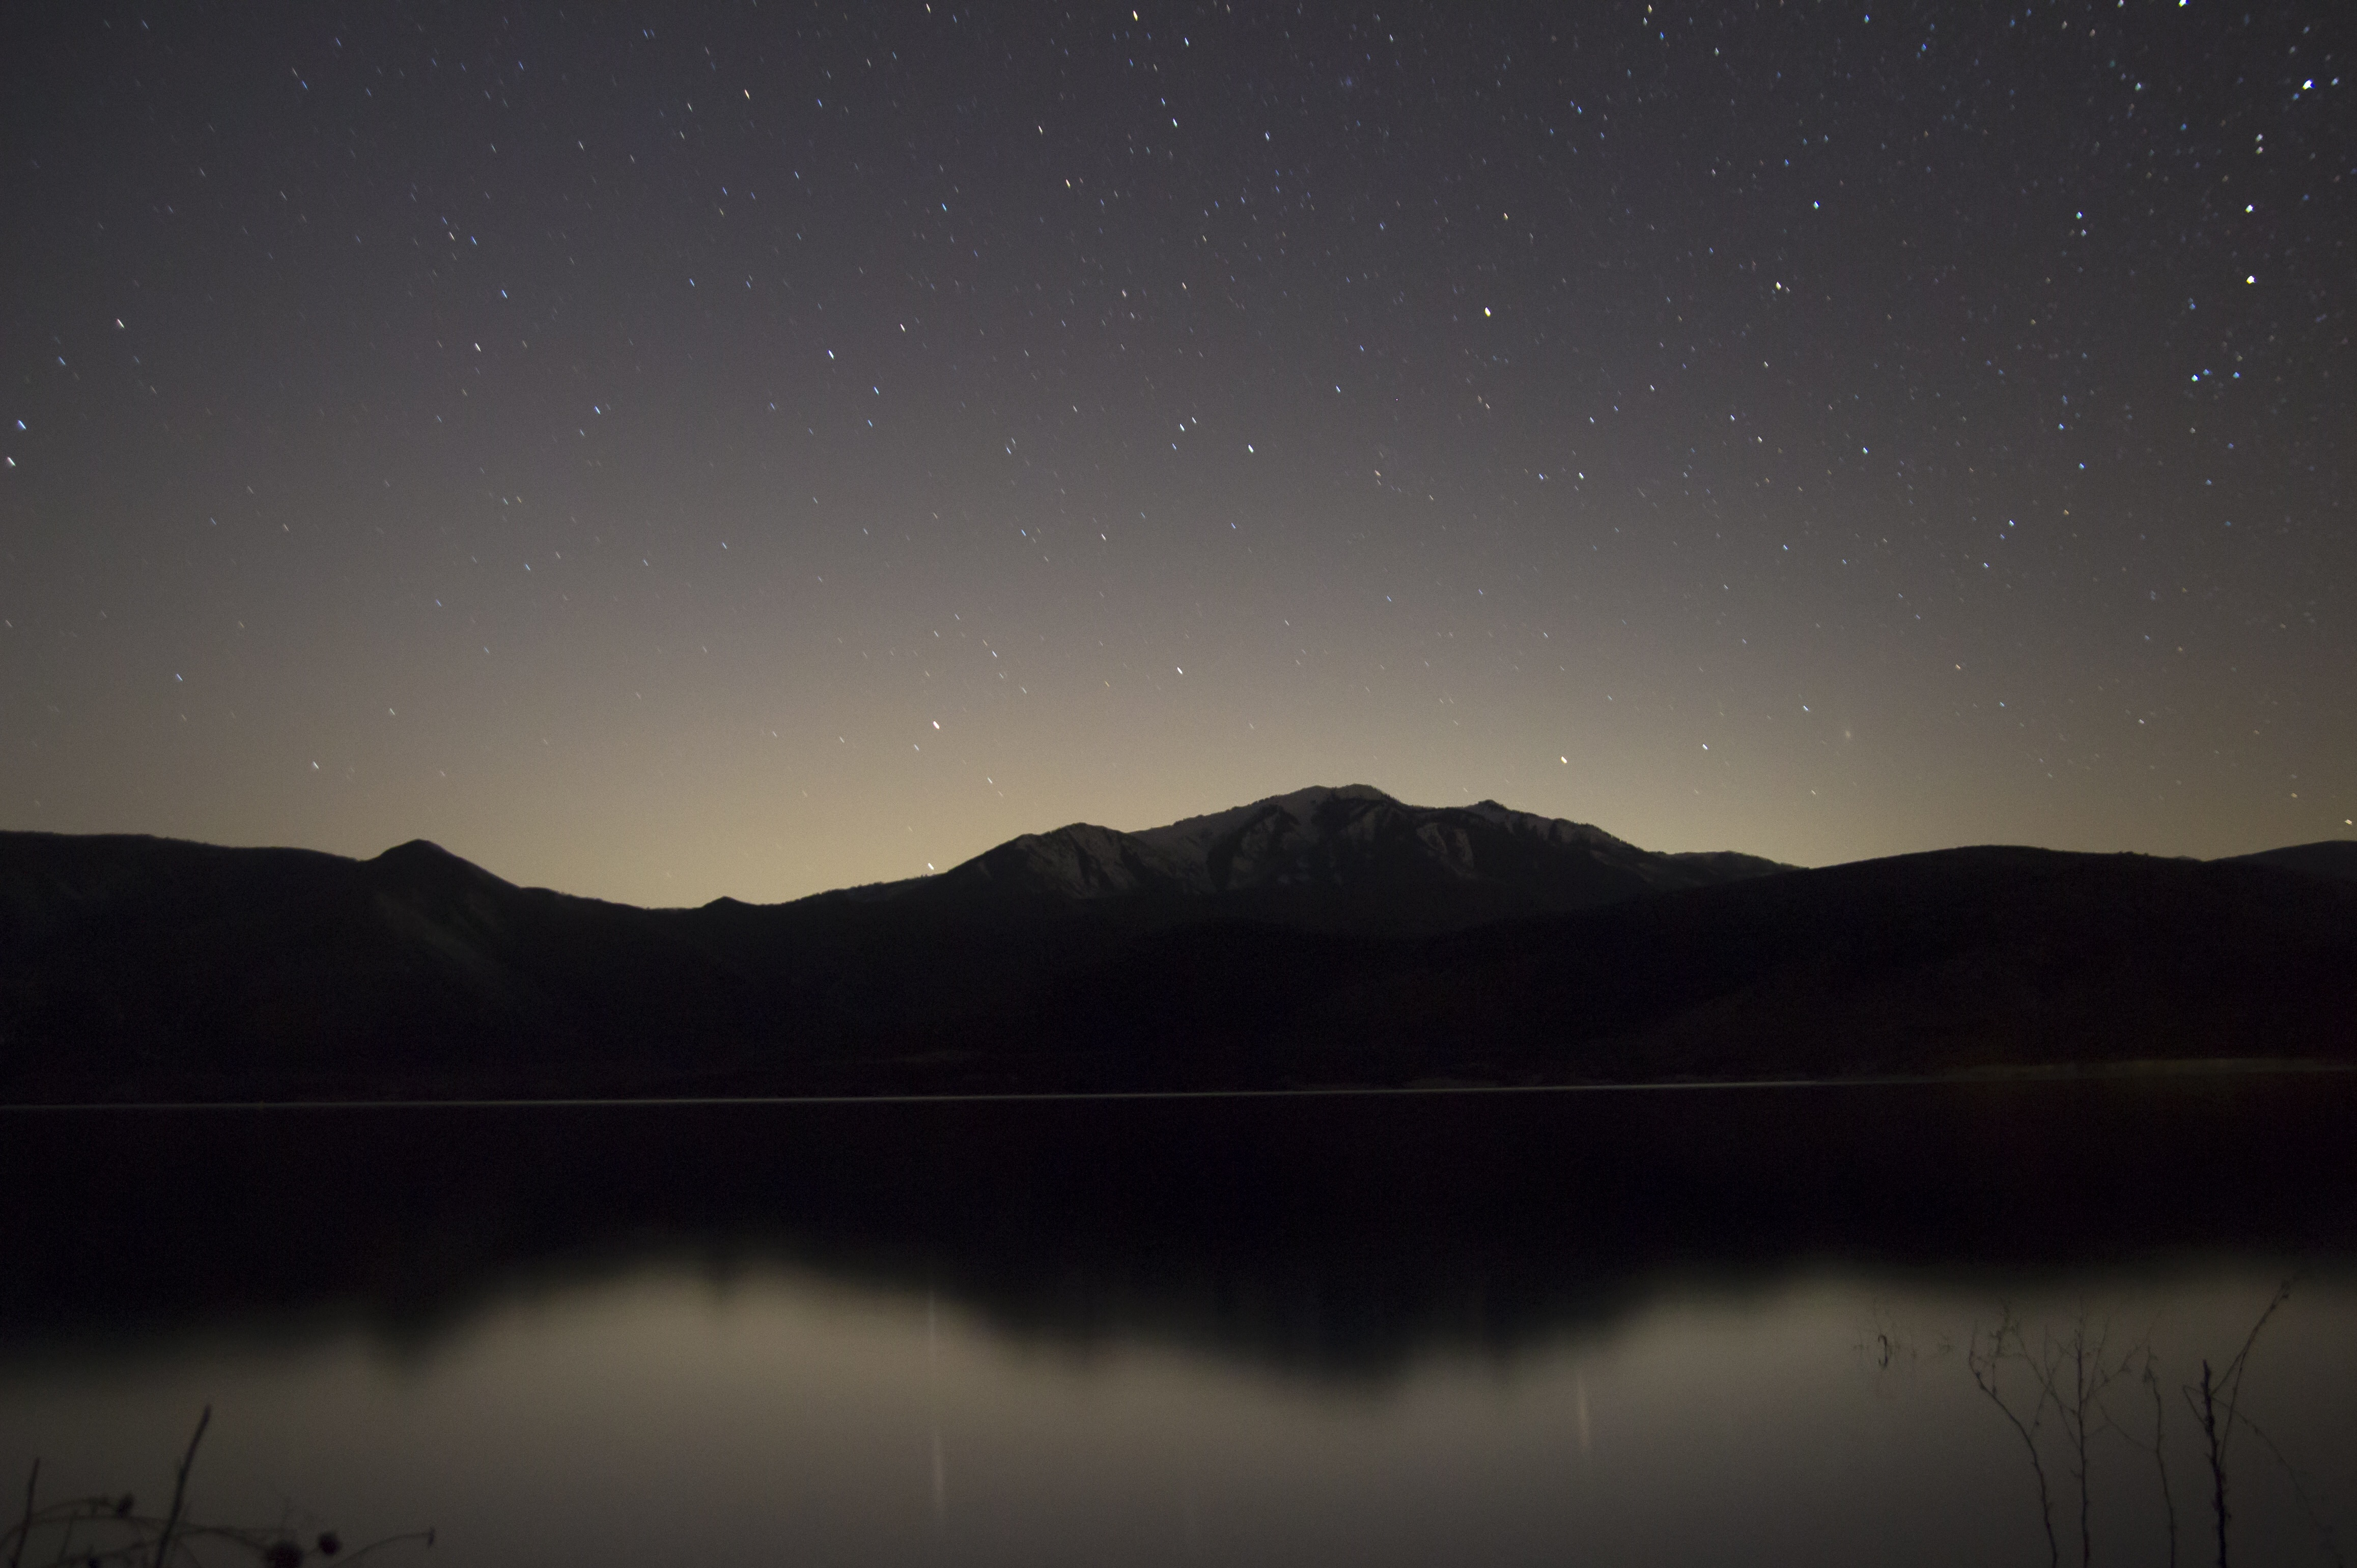 Picalls.com | Lake and mountains at night by Daniel Bowman.